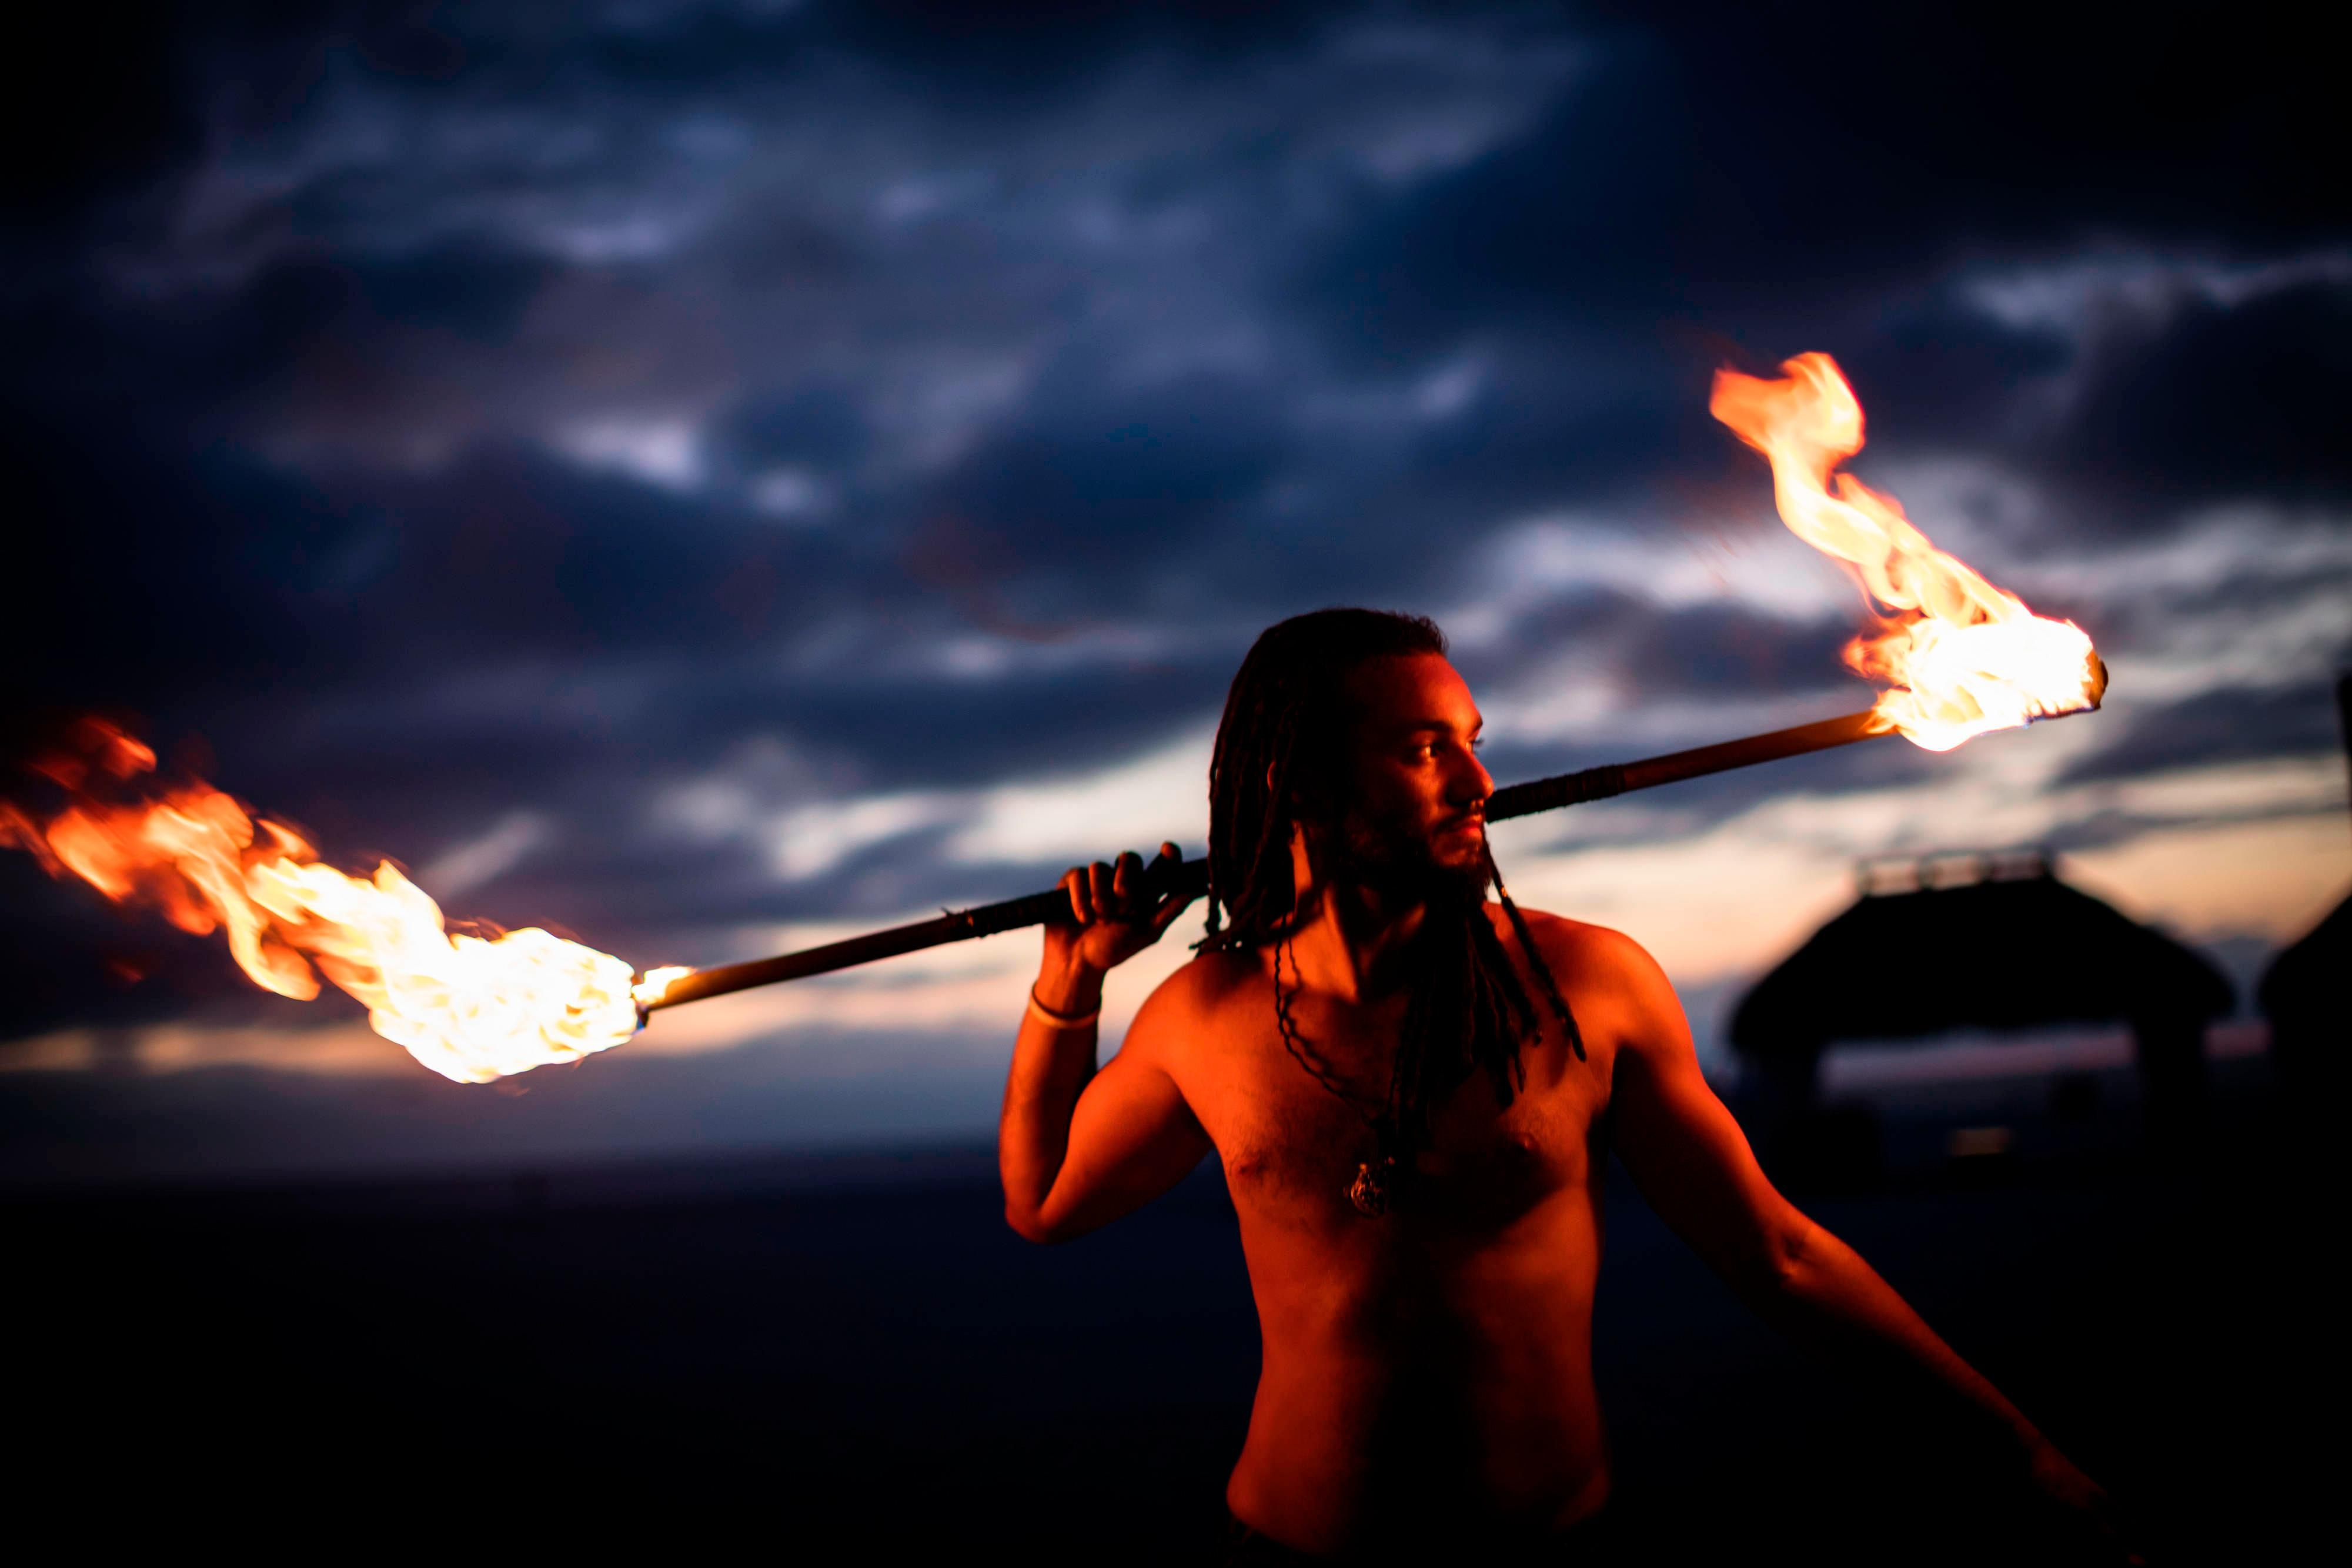 Sunset Celebration - Fire Dancer